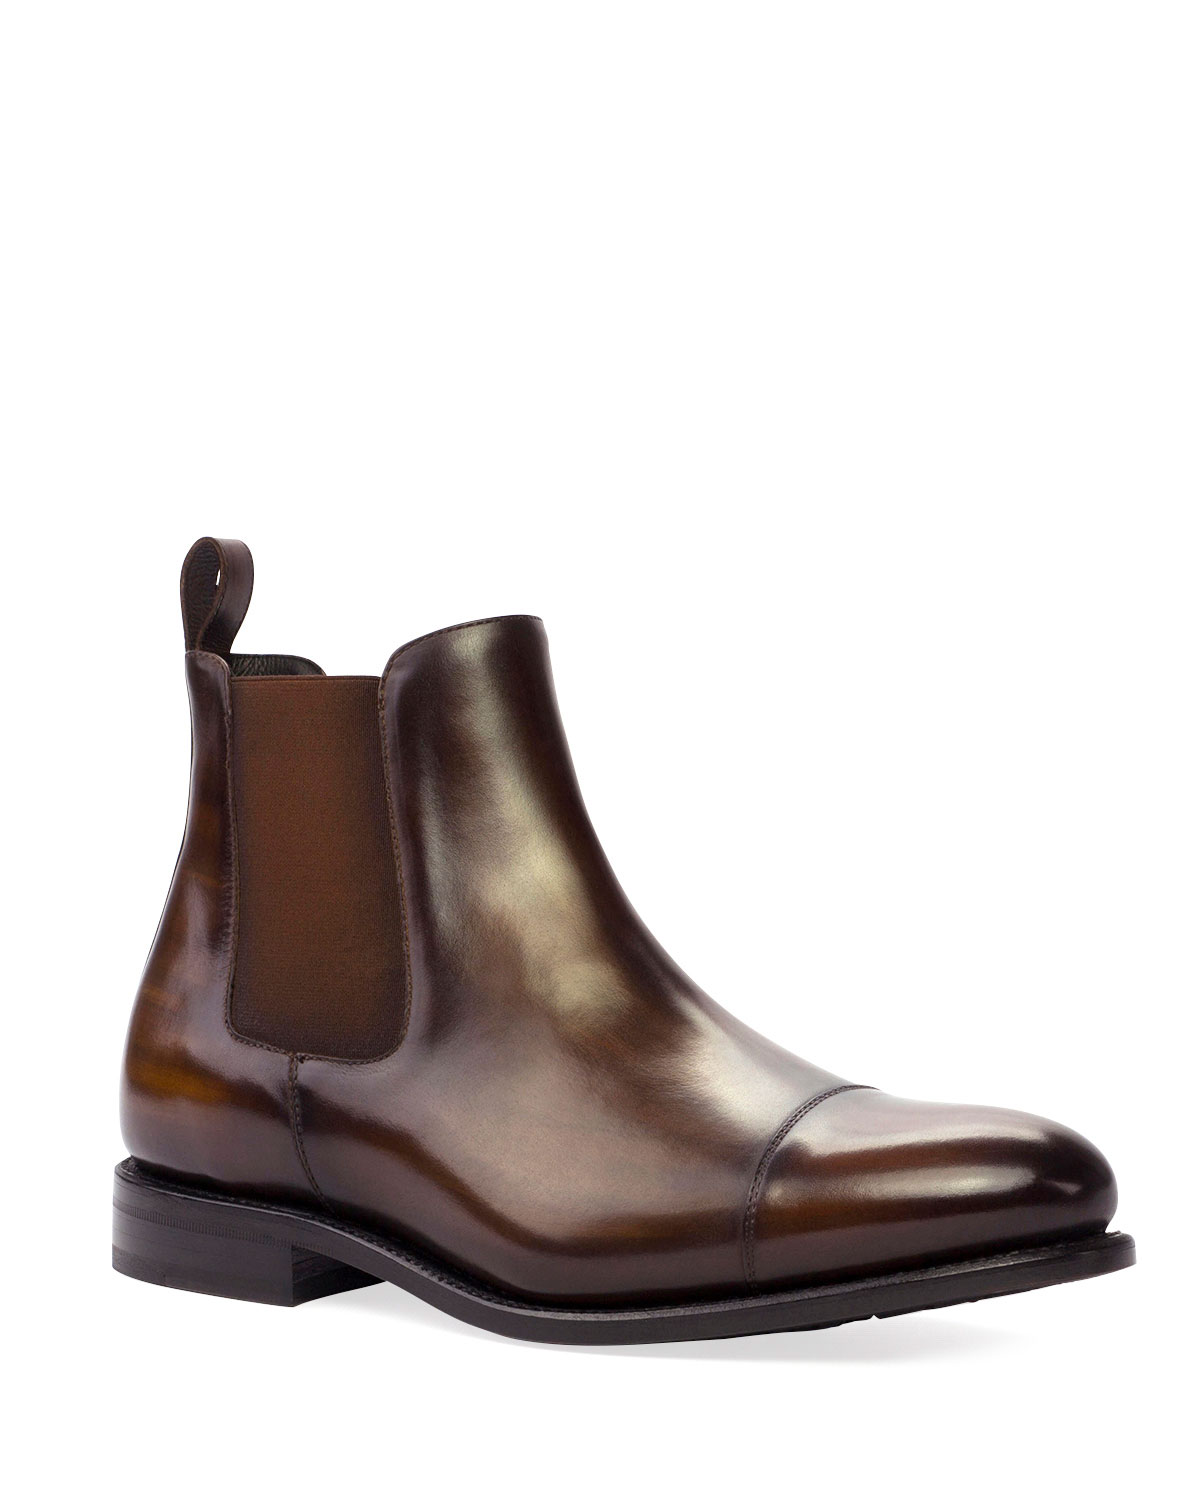 Men's Patina Leather Chelsea Boots